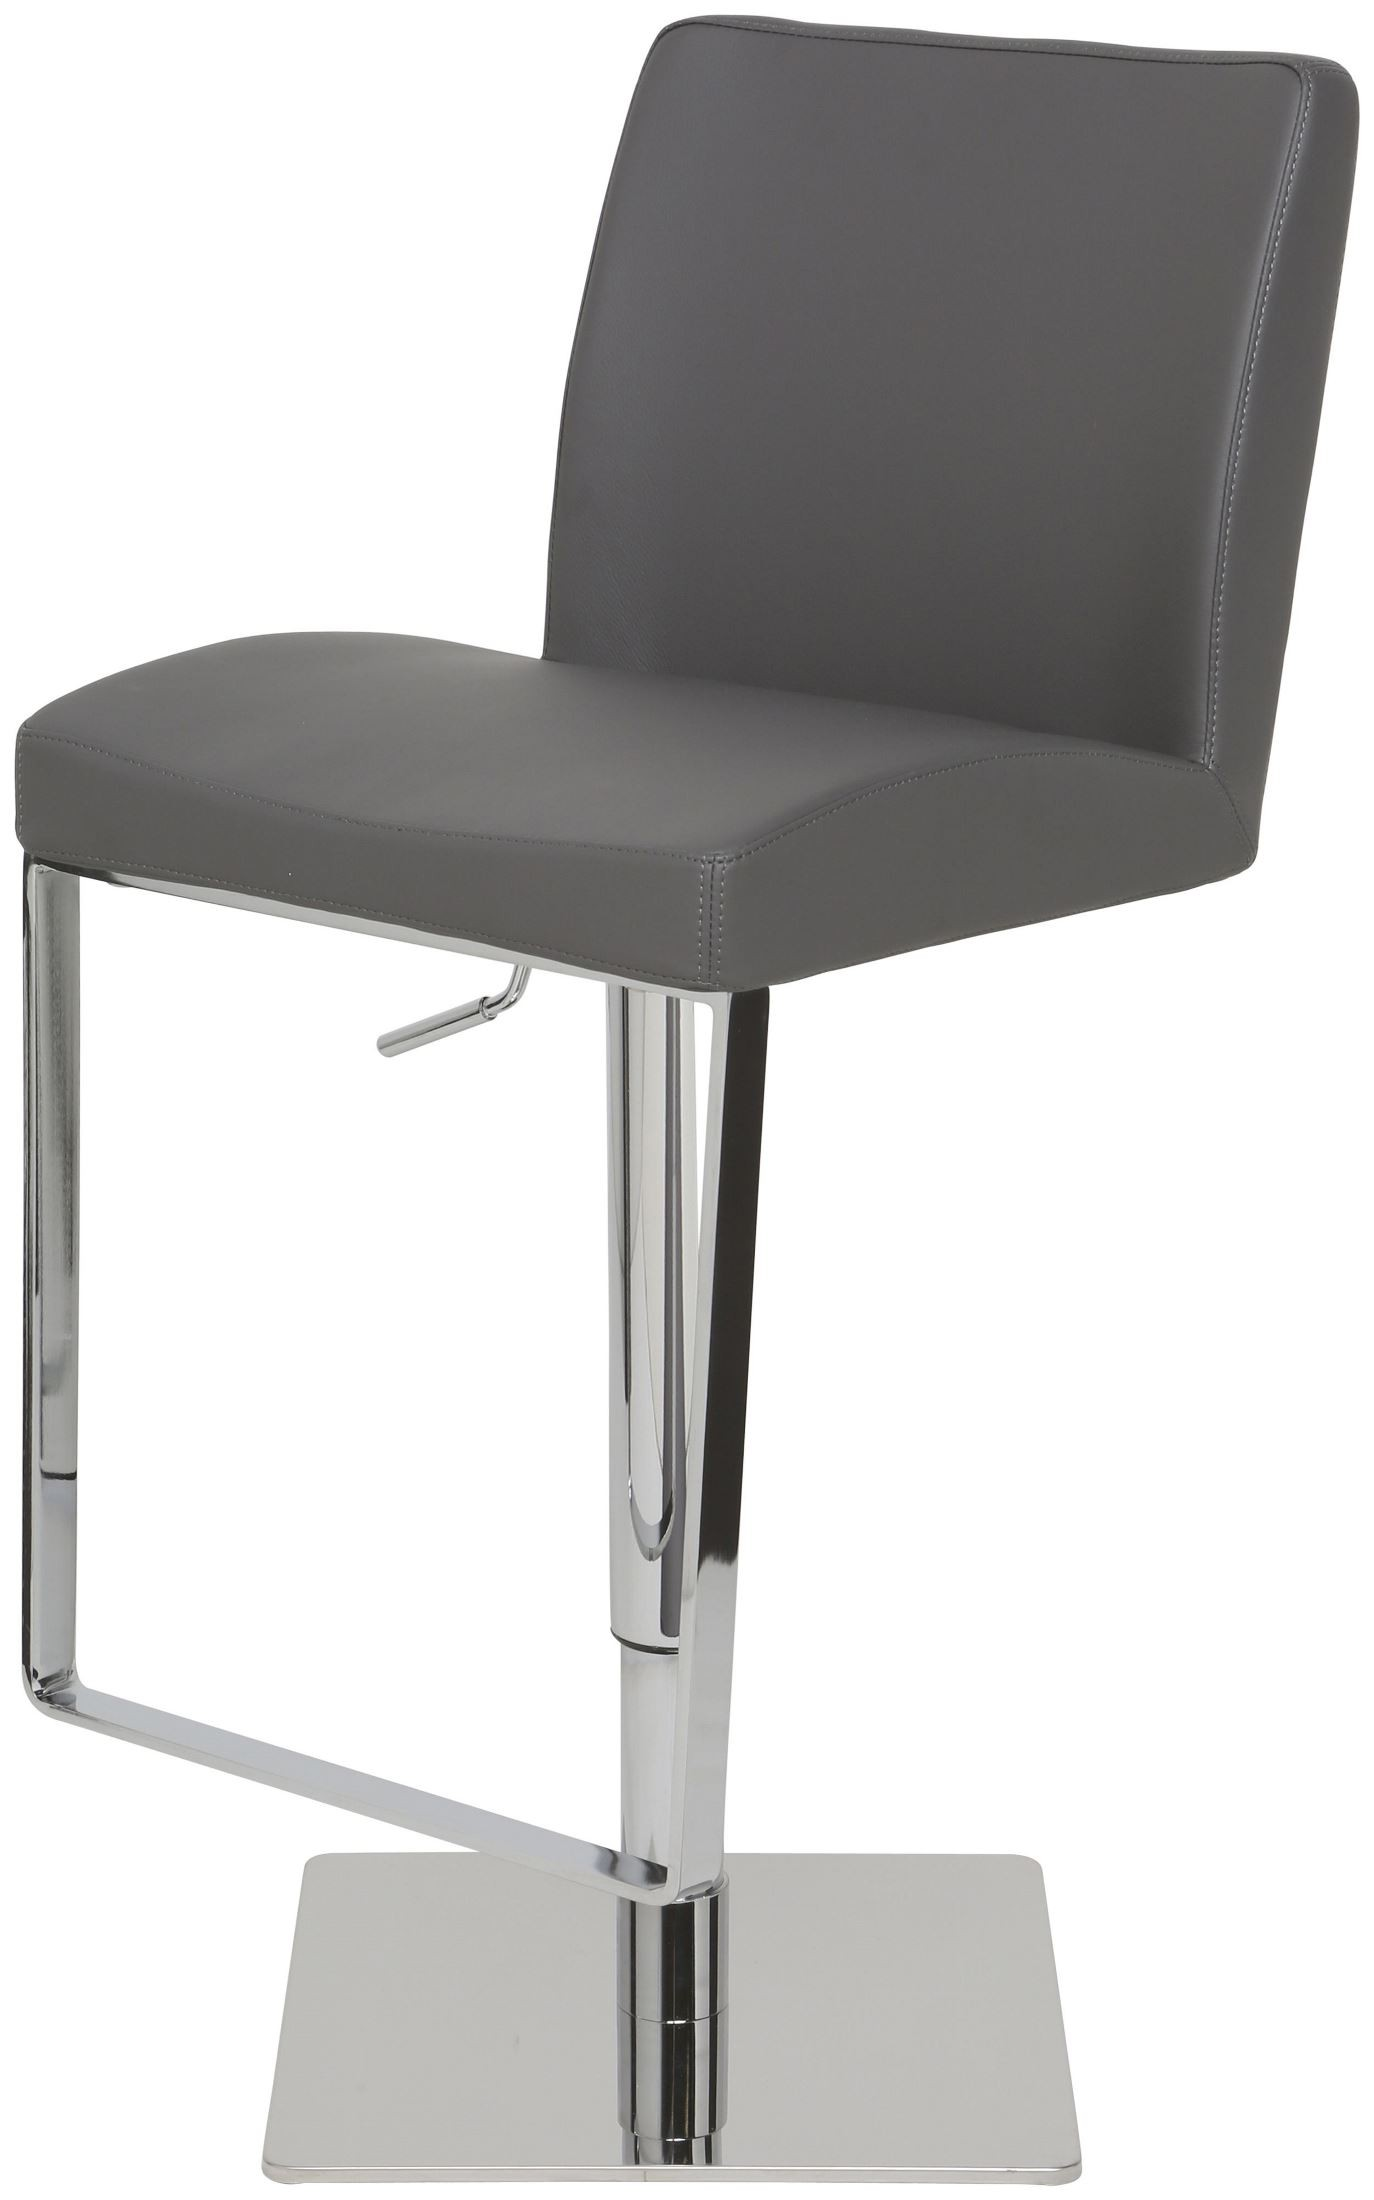 Matteo Grey Leather Adjustable Stool From Nuevo Coleman